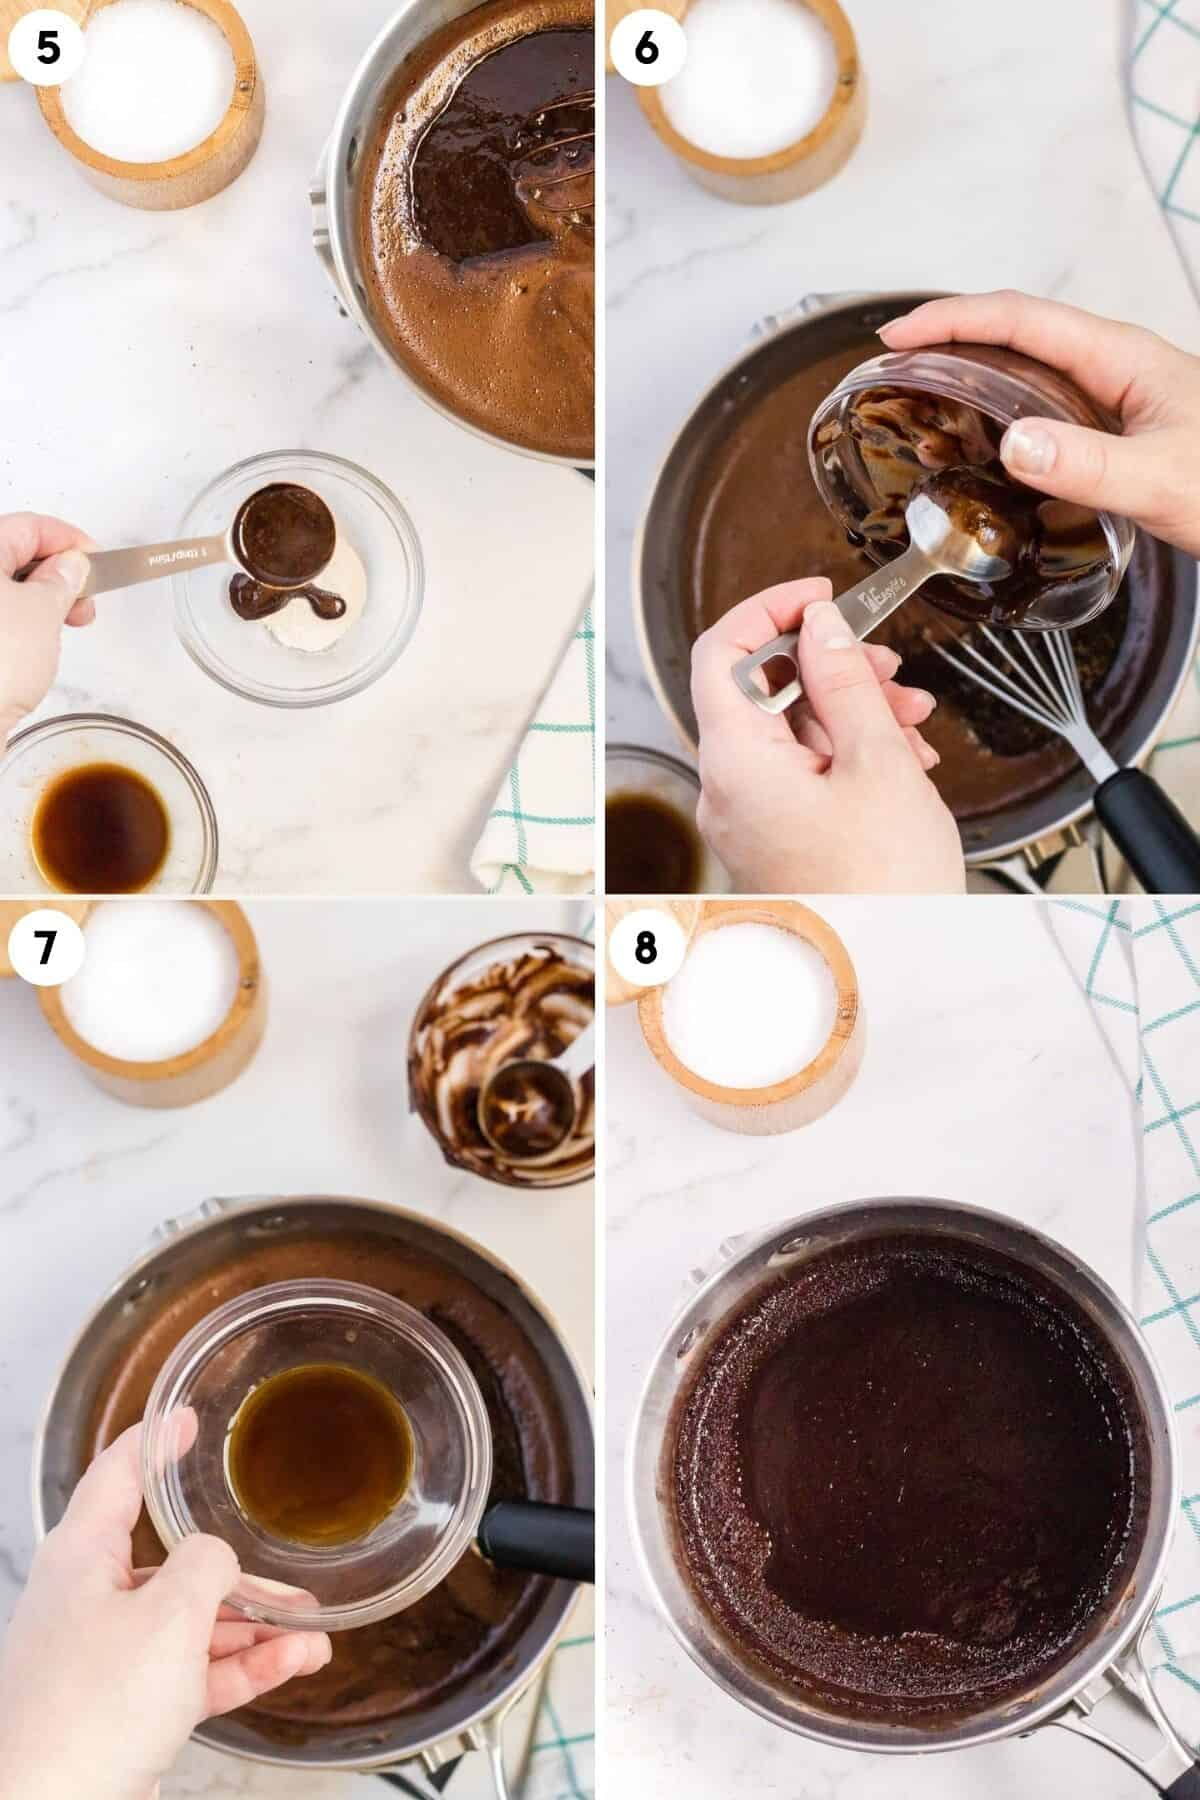 steps 5-8 of making chocolate syrup